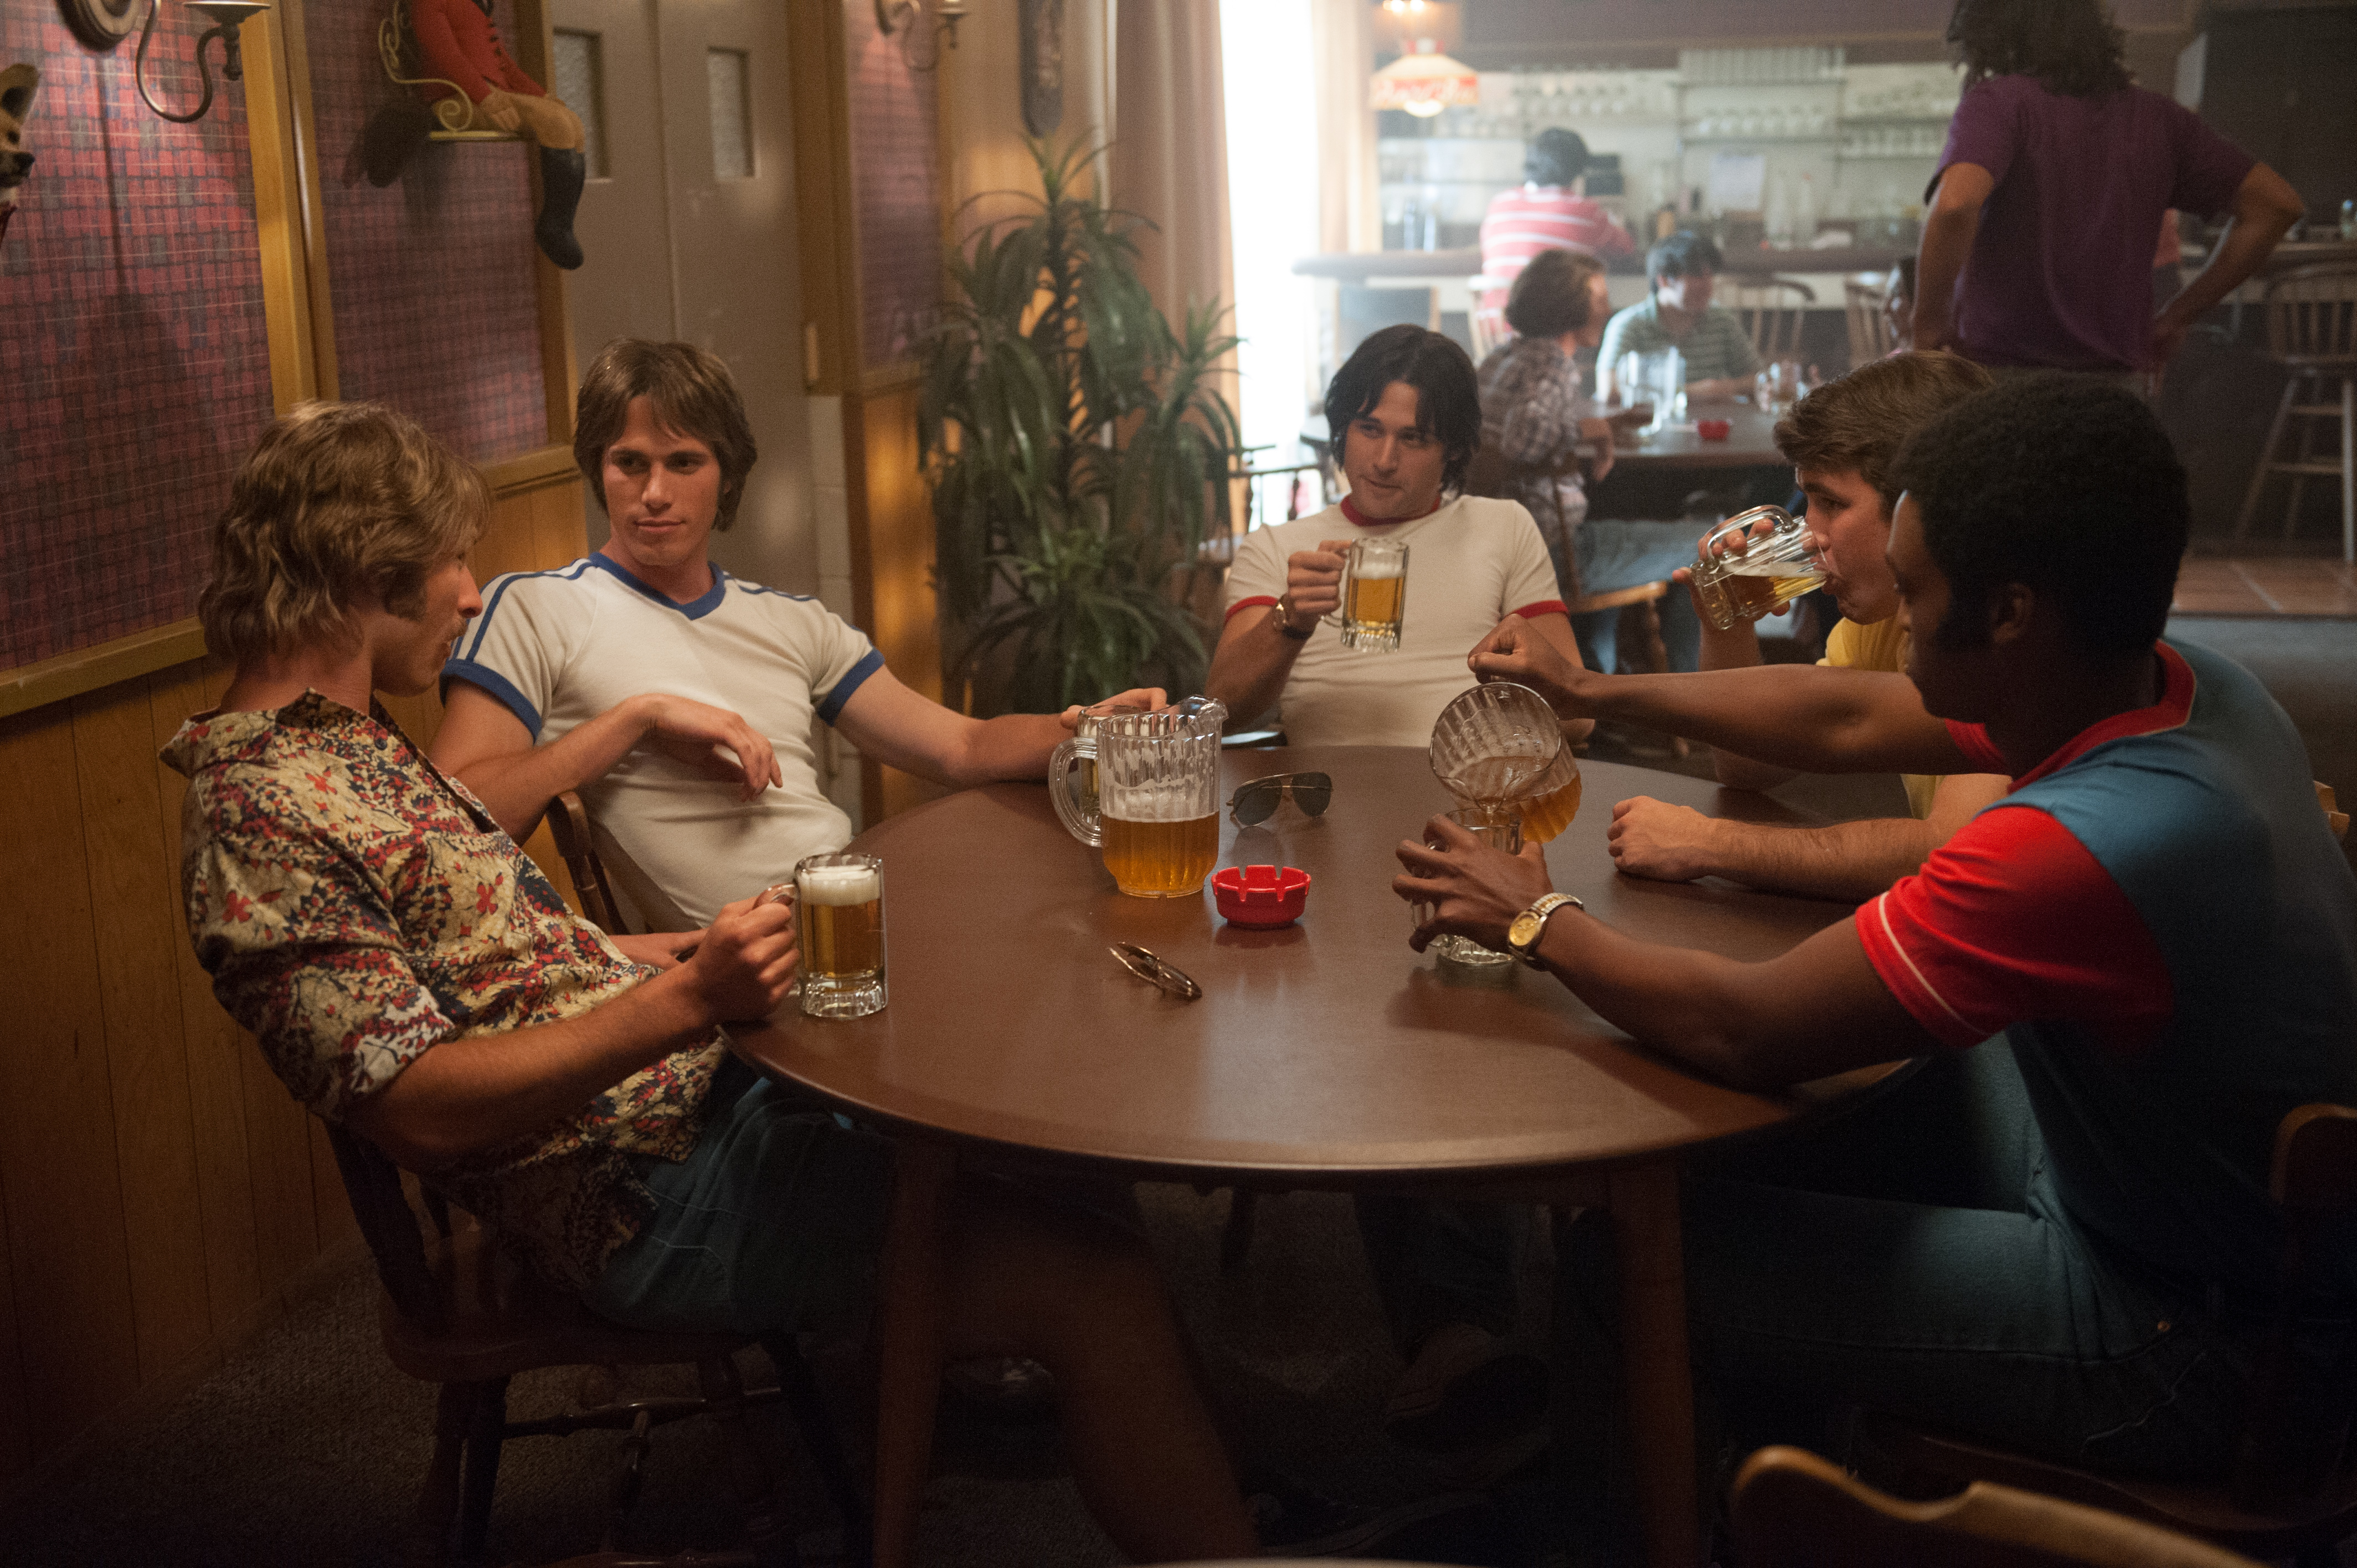 Richard Linklater's 'Everybody Wants Some!! ' is showing at Cinema Qualite's Qualite Collection film festival. | © 2015 PARAMOUNT PICTURES, ALL RIGHTS RESERVED